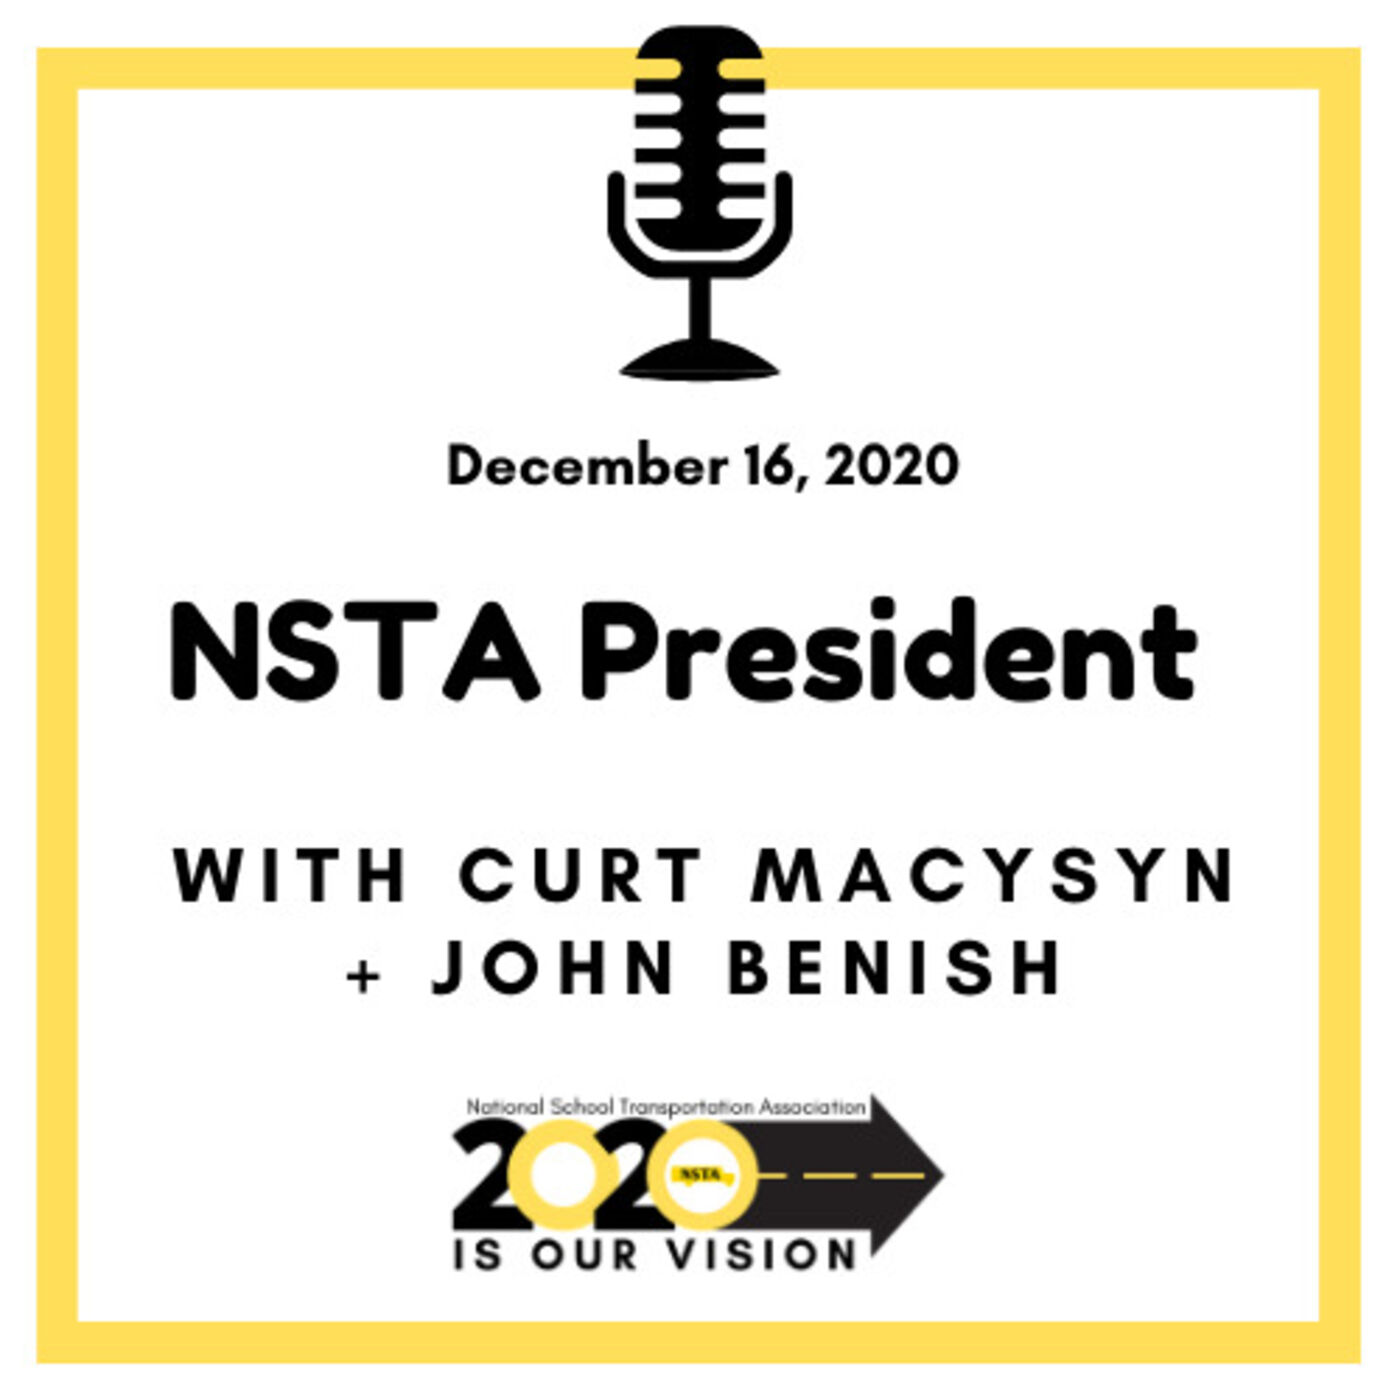 NSTA President | John Benish, COO of Cook Illinois